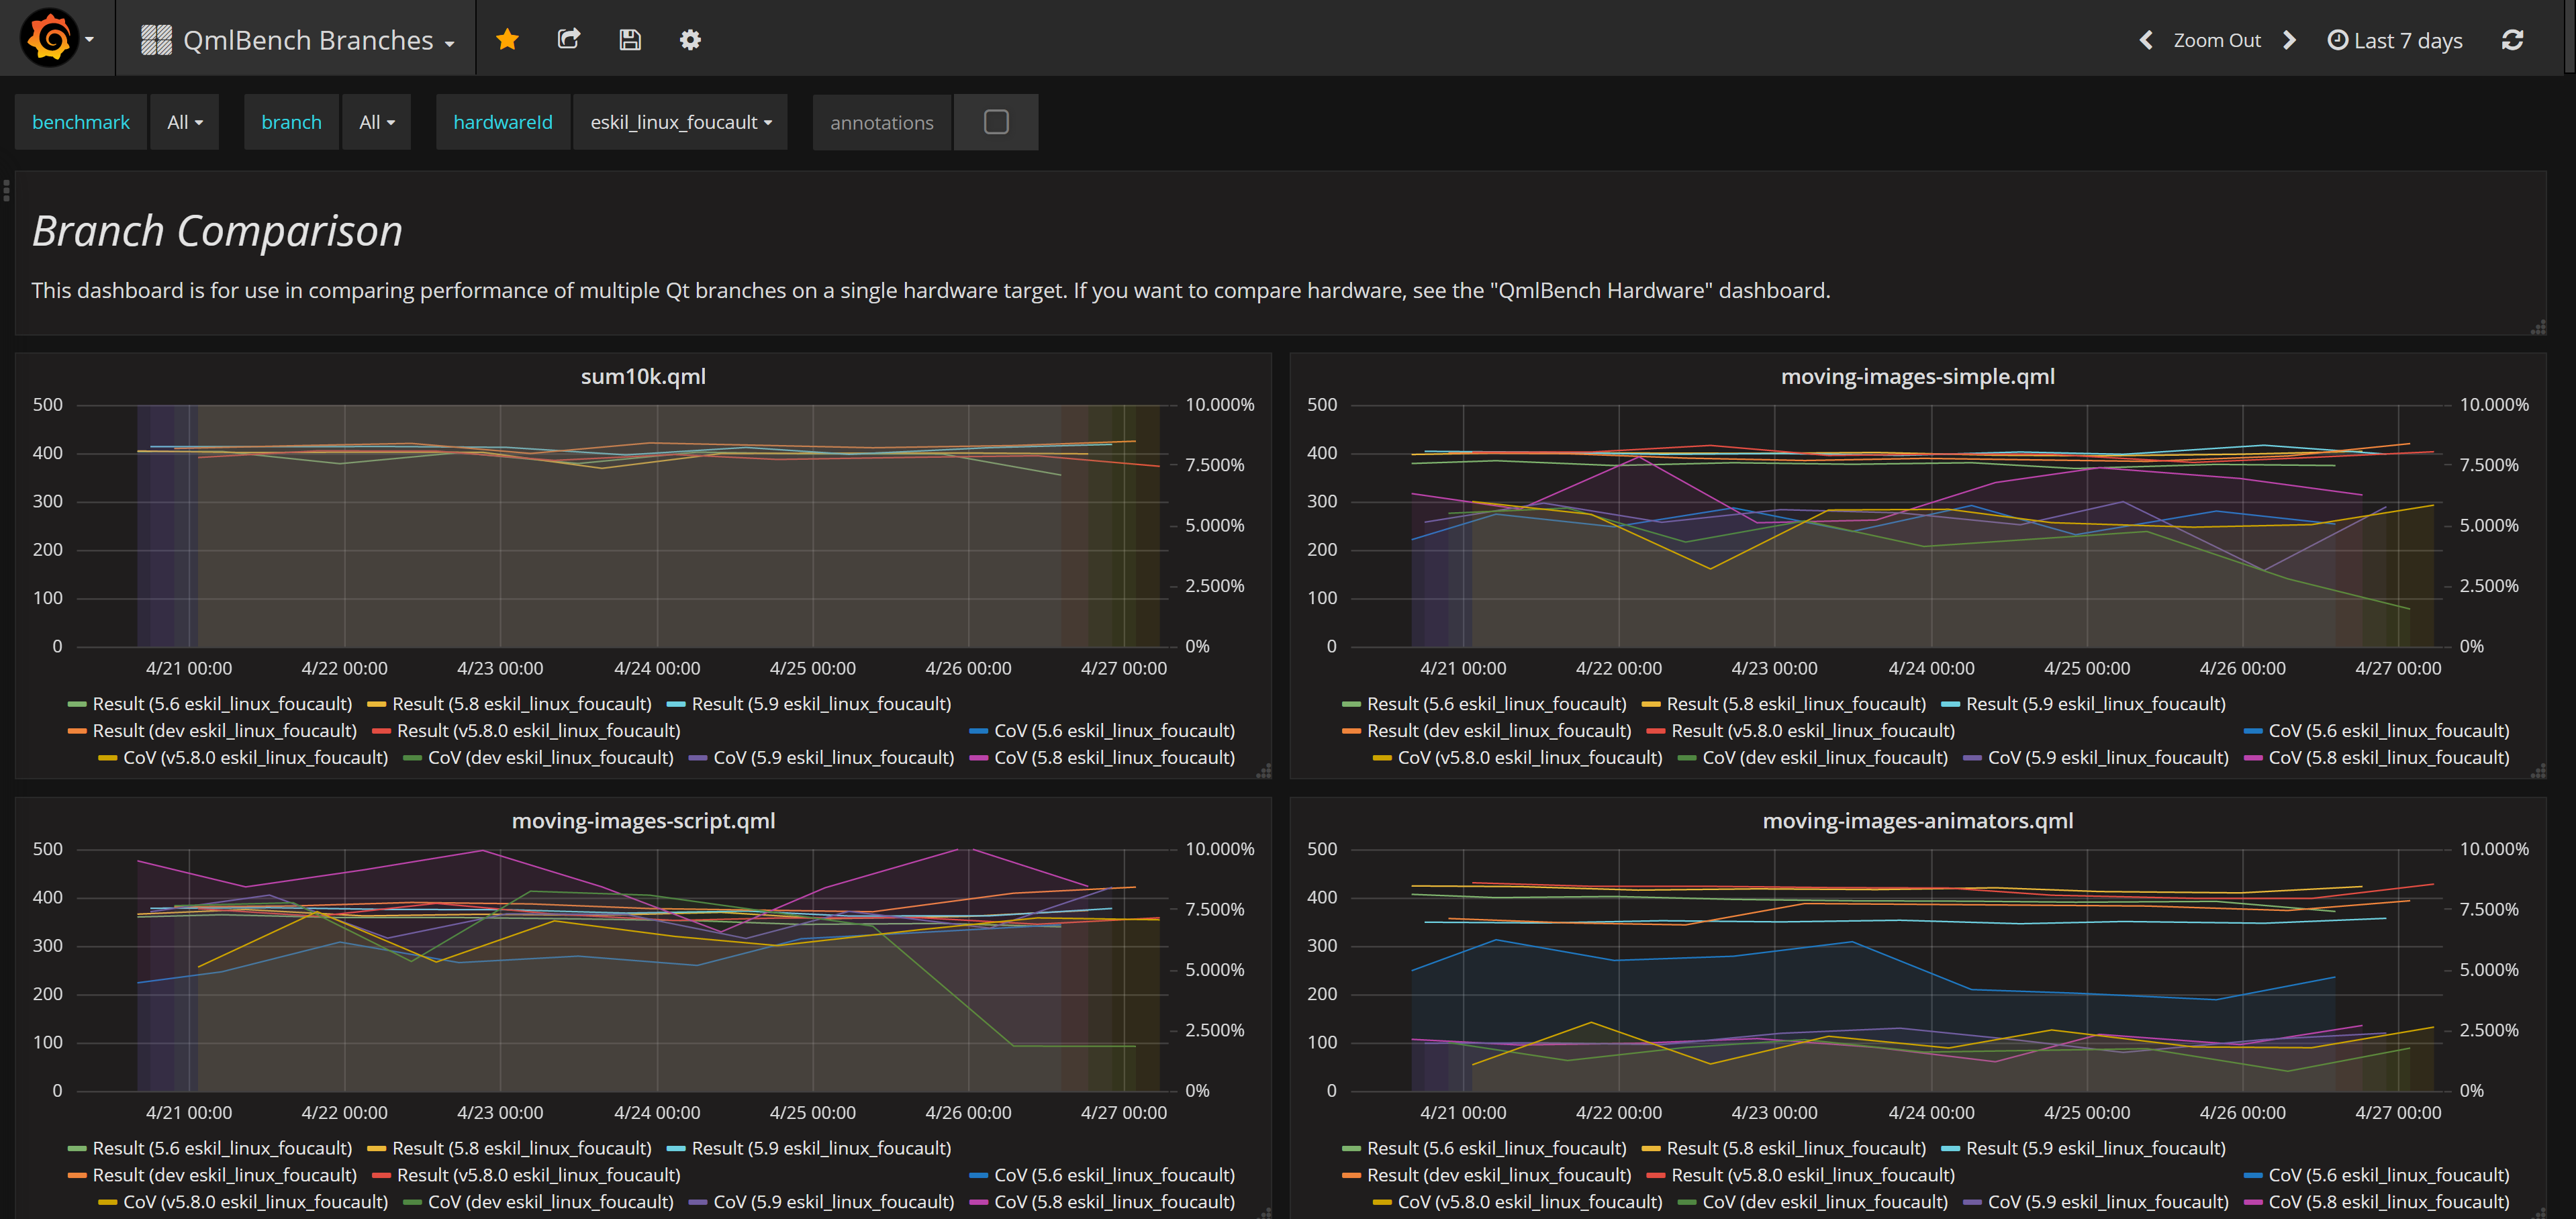 Grafana showing results of running benchmarks